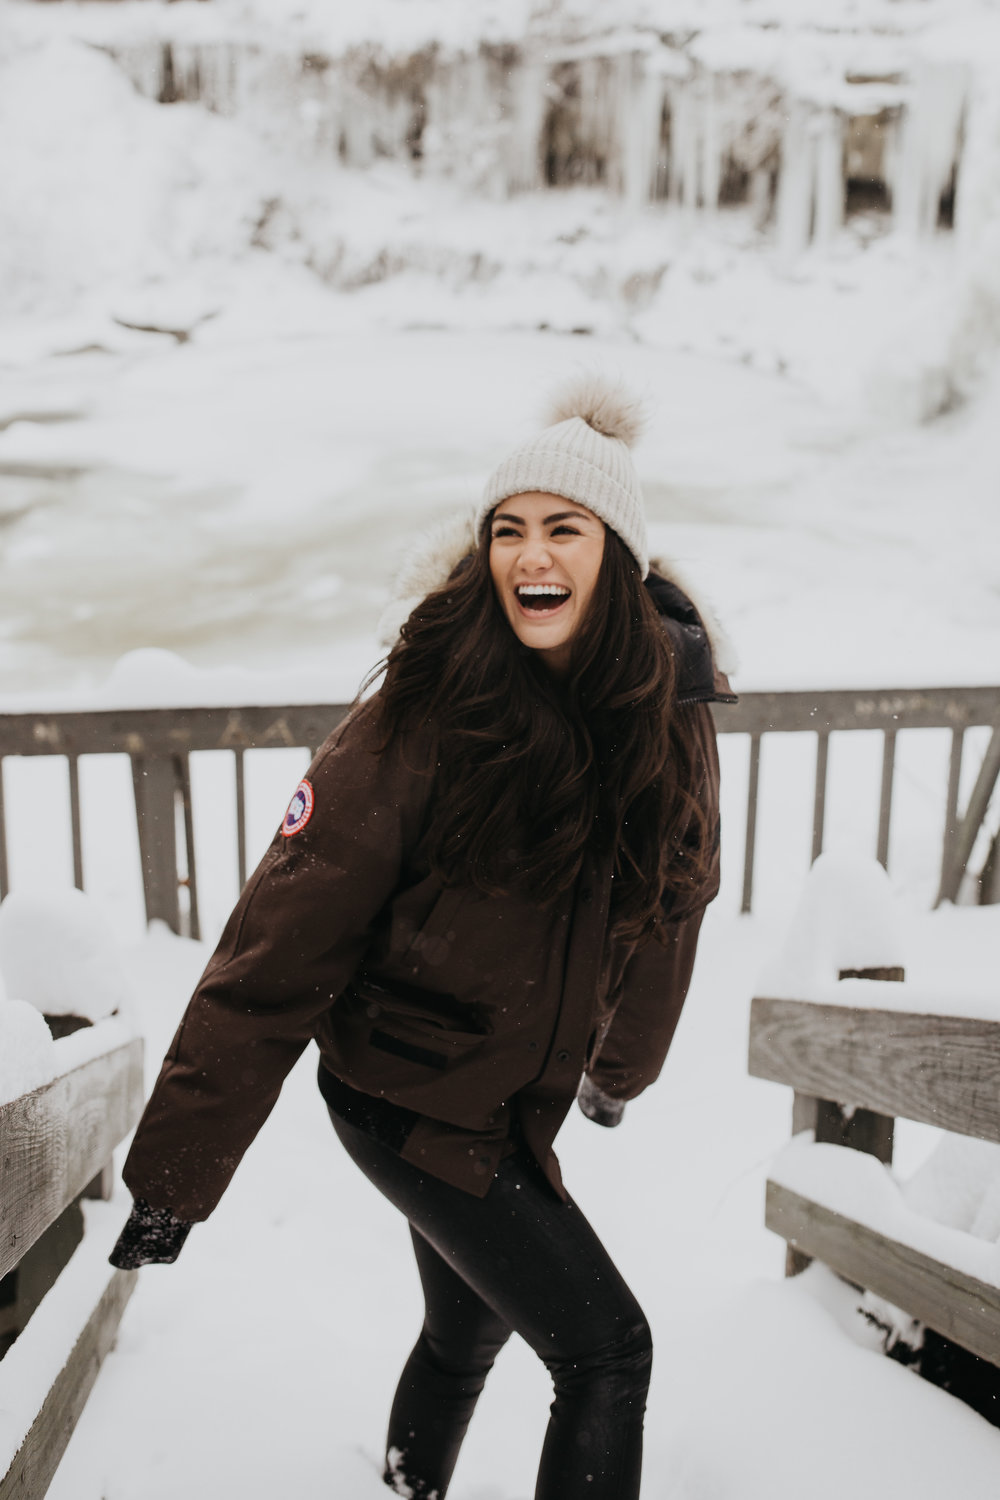 The Bachelor Caila Quinn Chagrin Falls Ohio Visit Winter Ice Waterfall